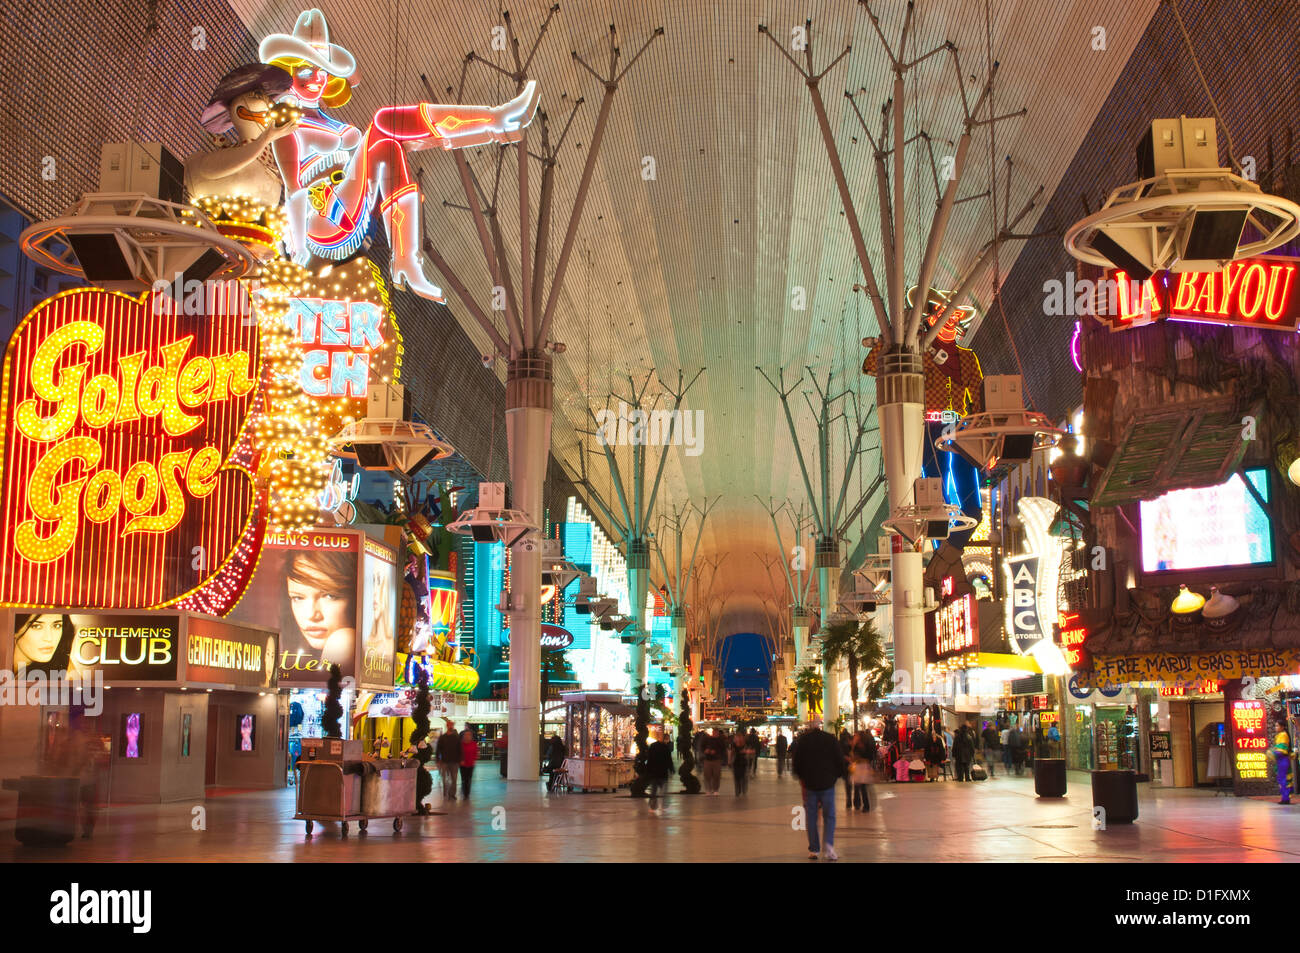 Fremont Street Experience, Las Vegas, Nevada, United States of America, North America - Stock Image